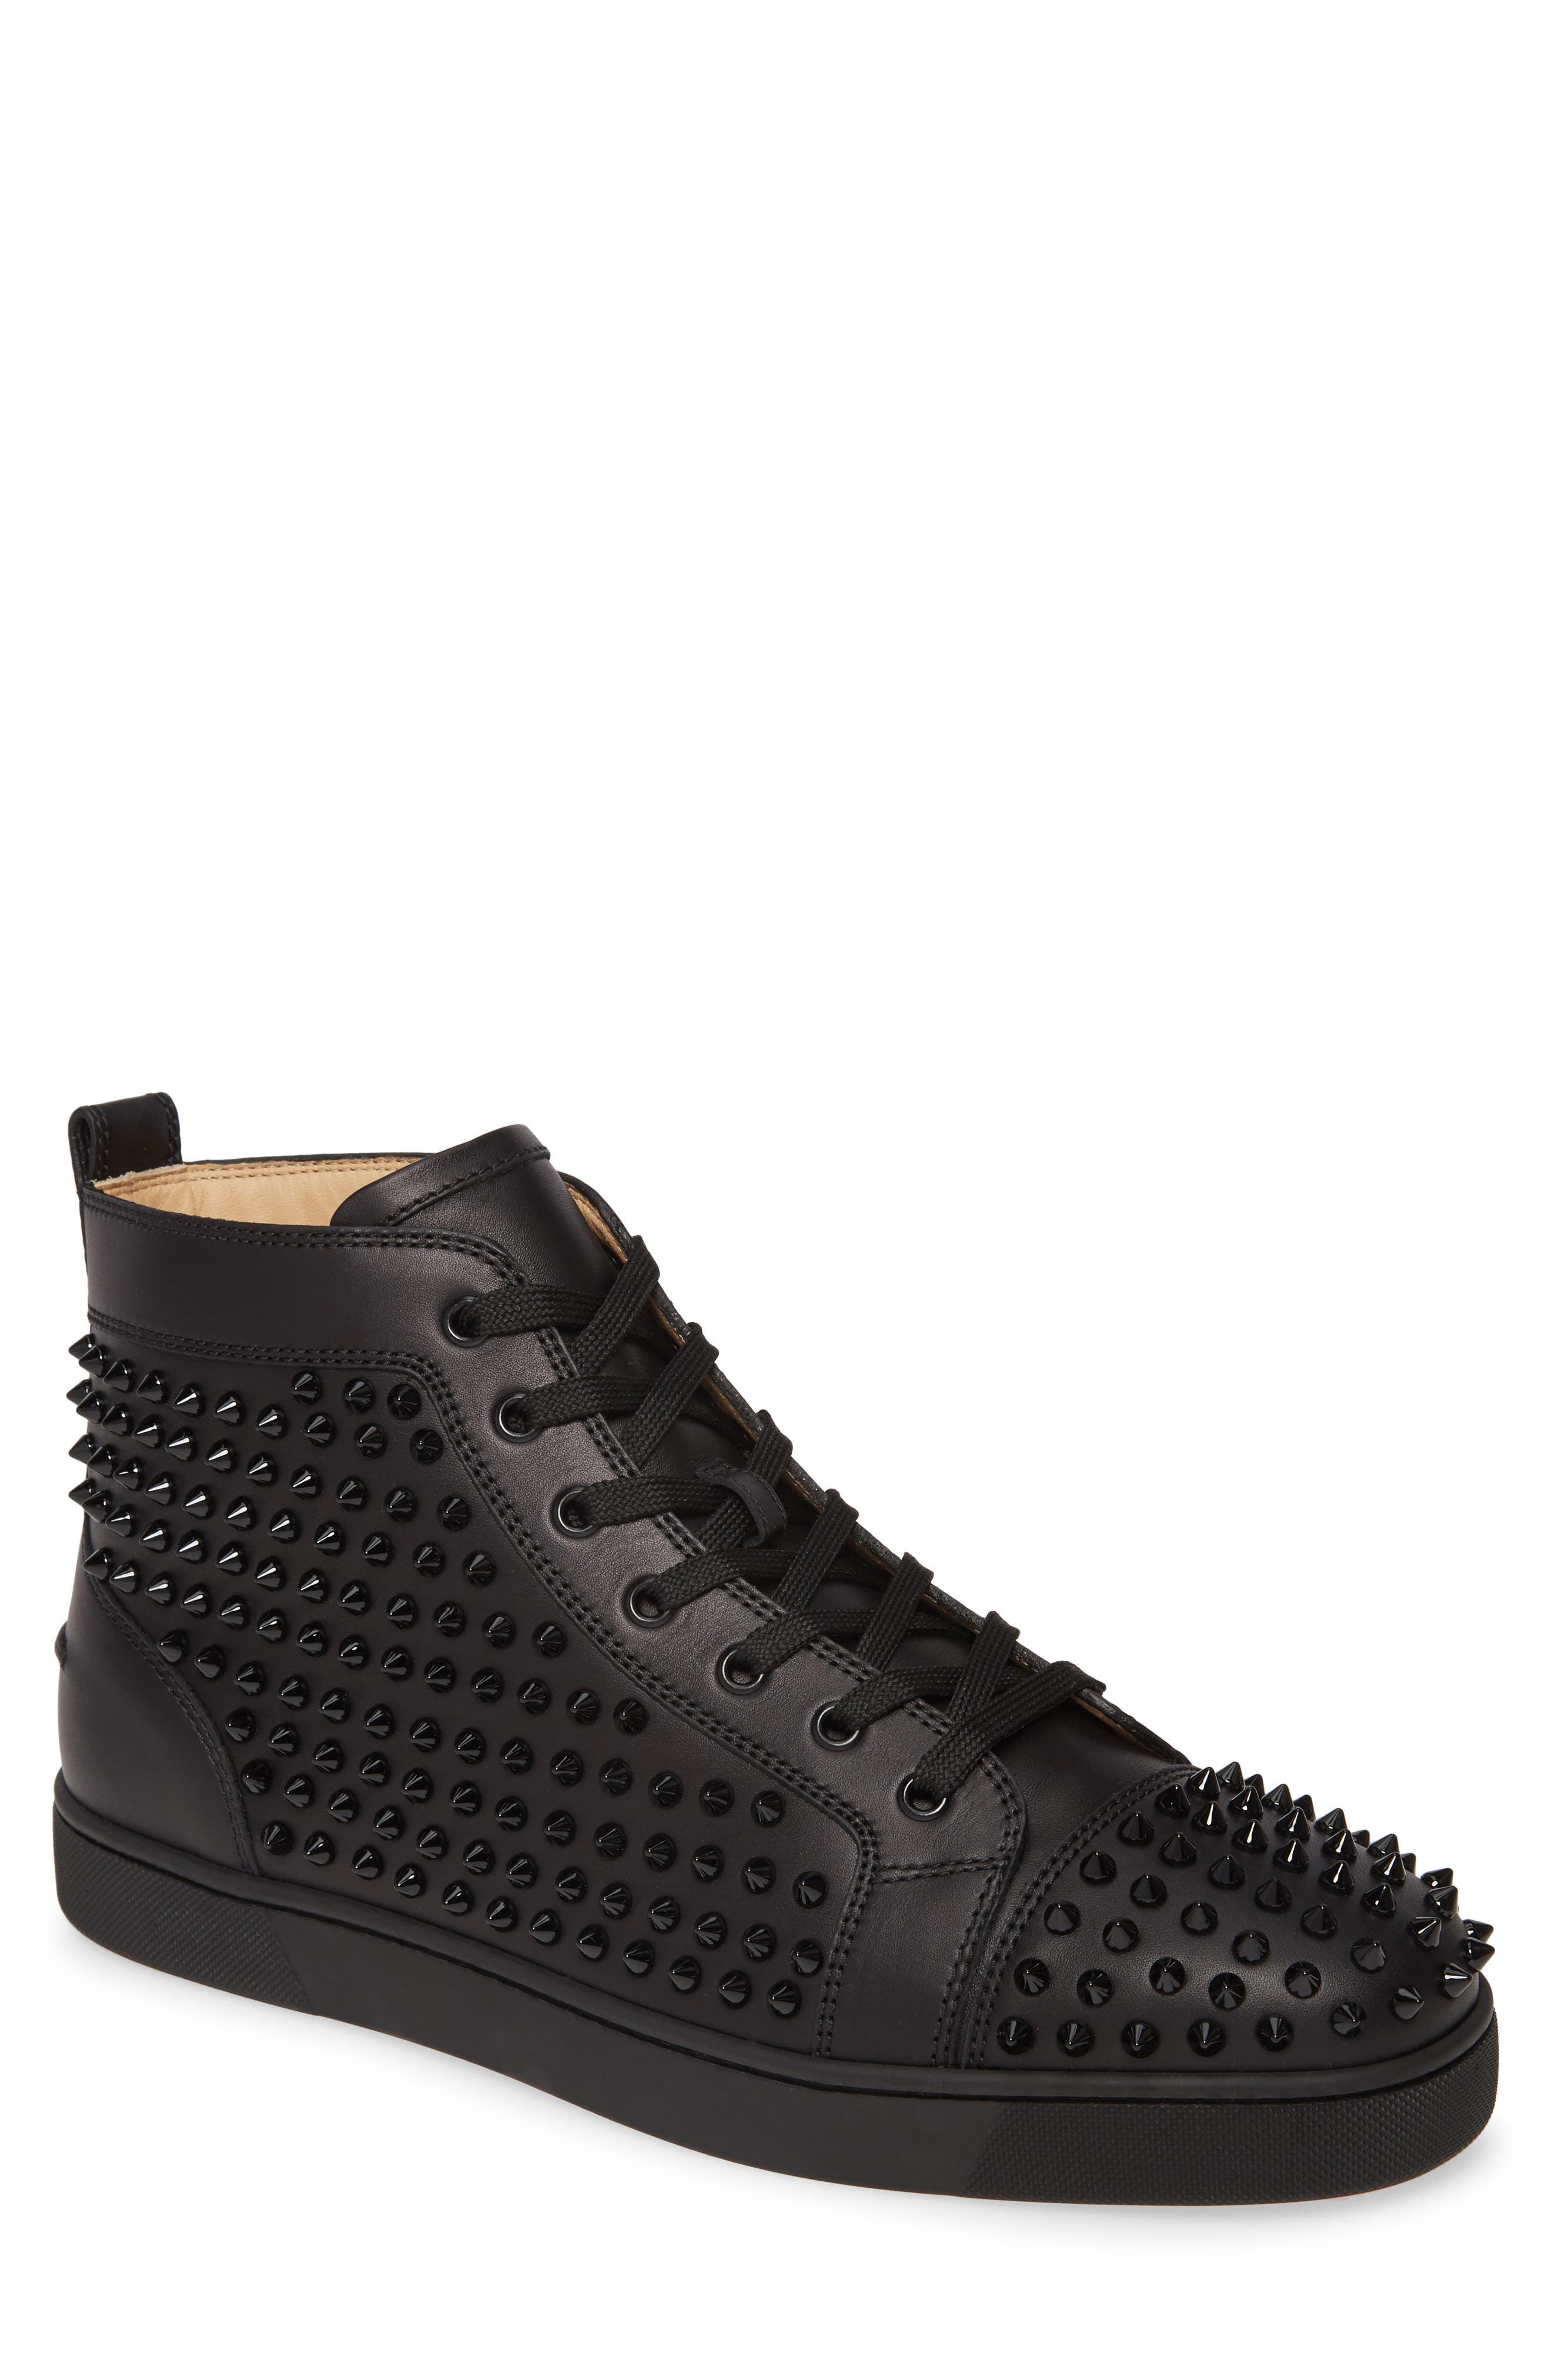 louboutin high top spikes